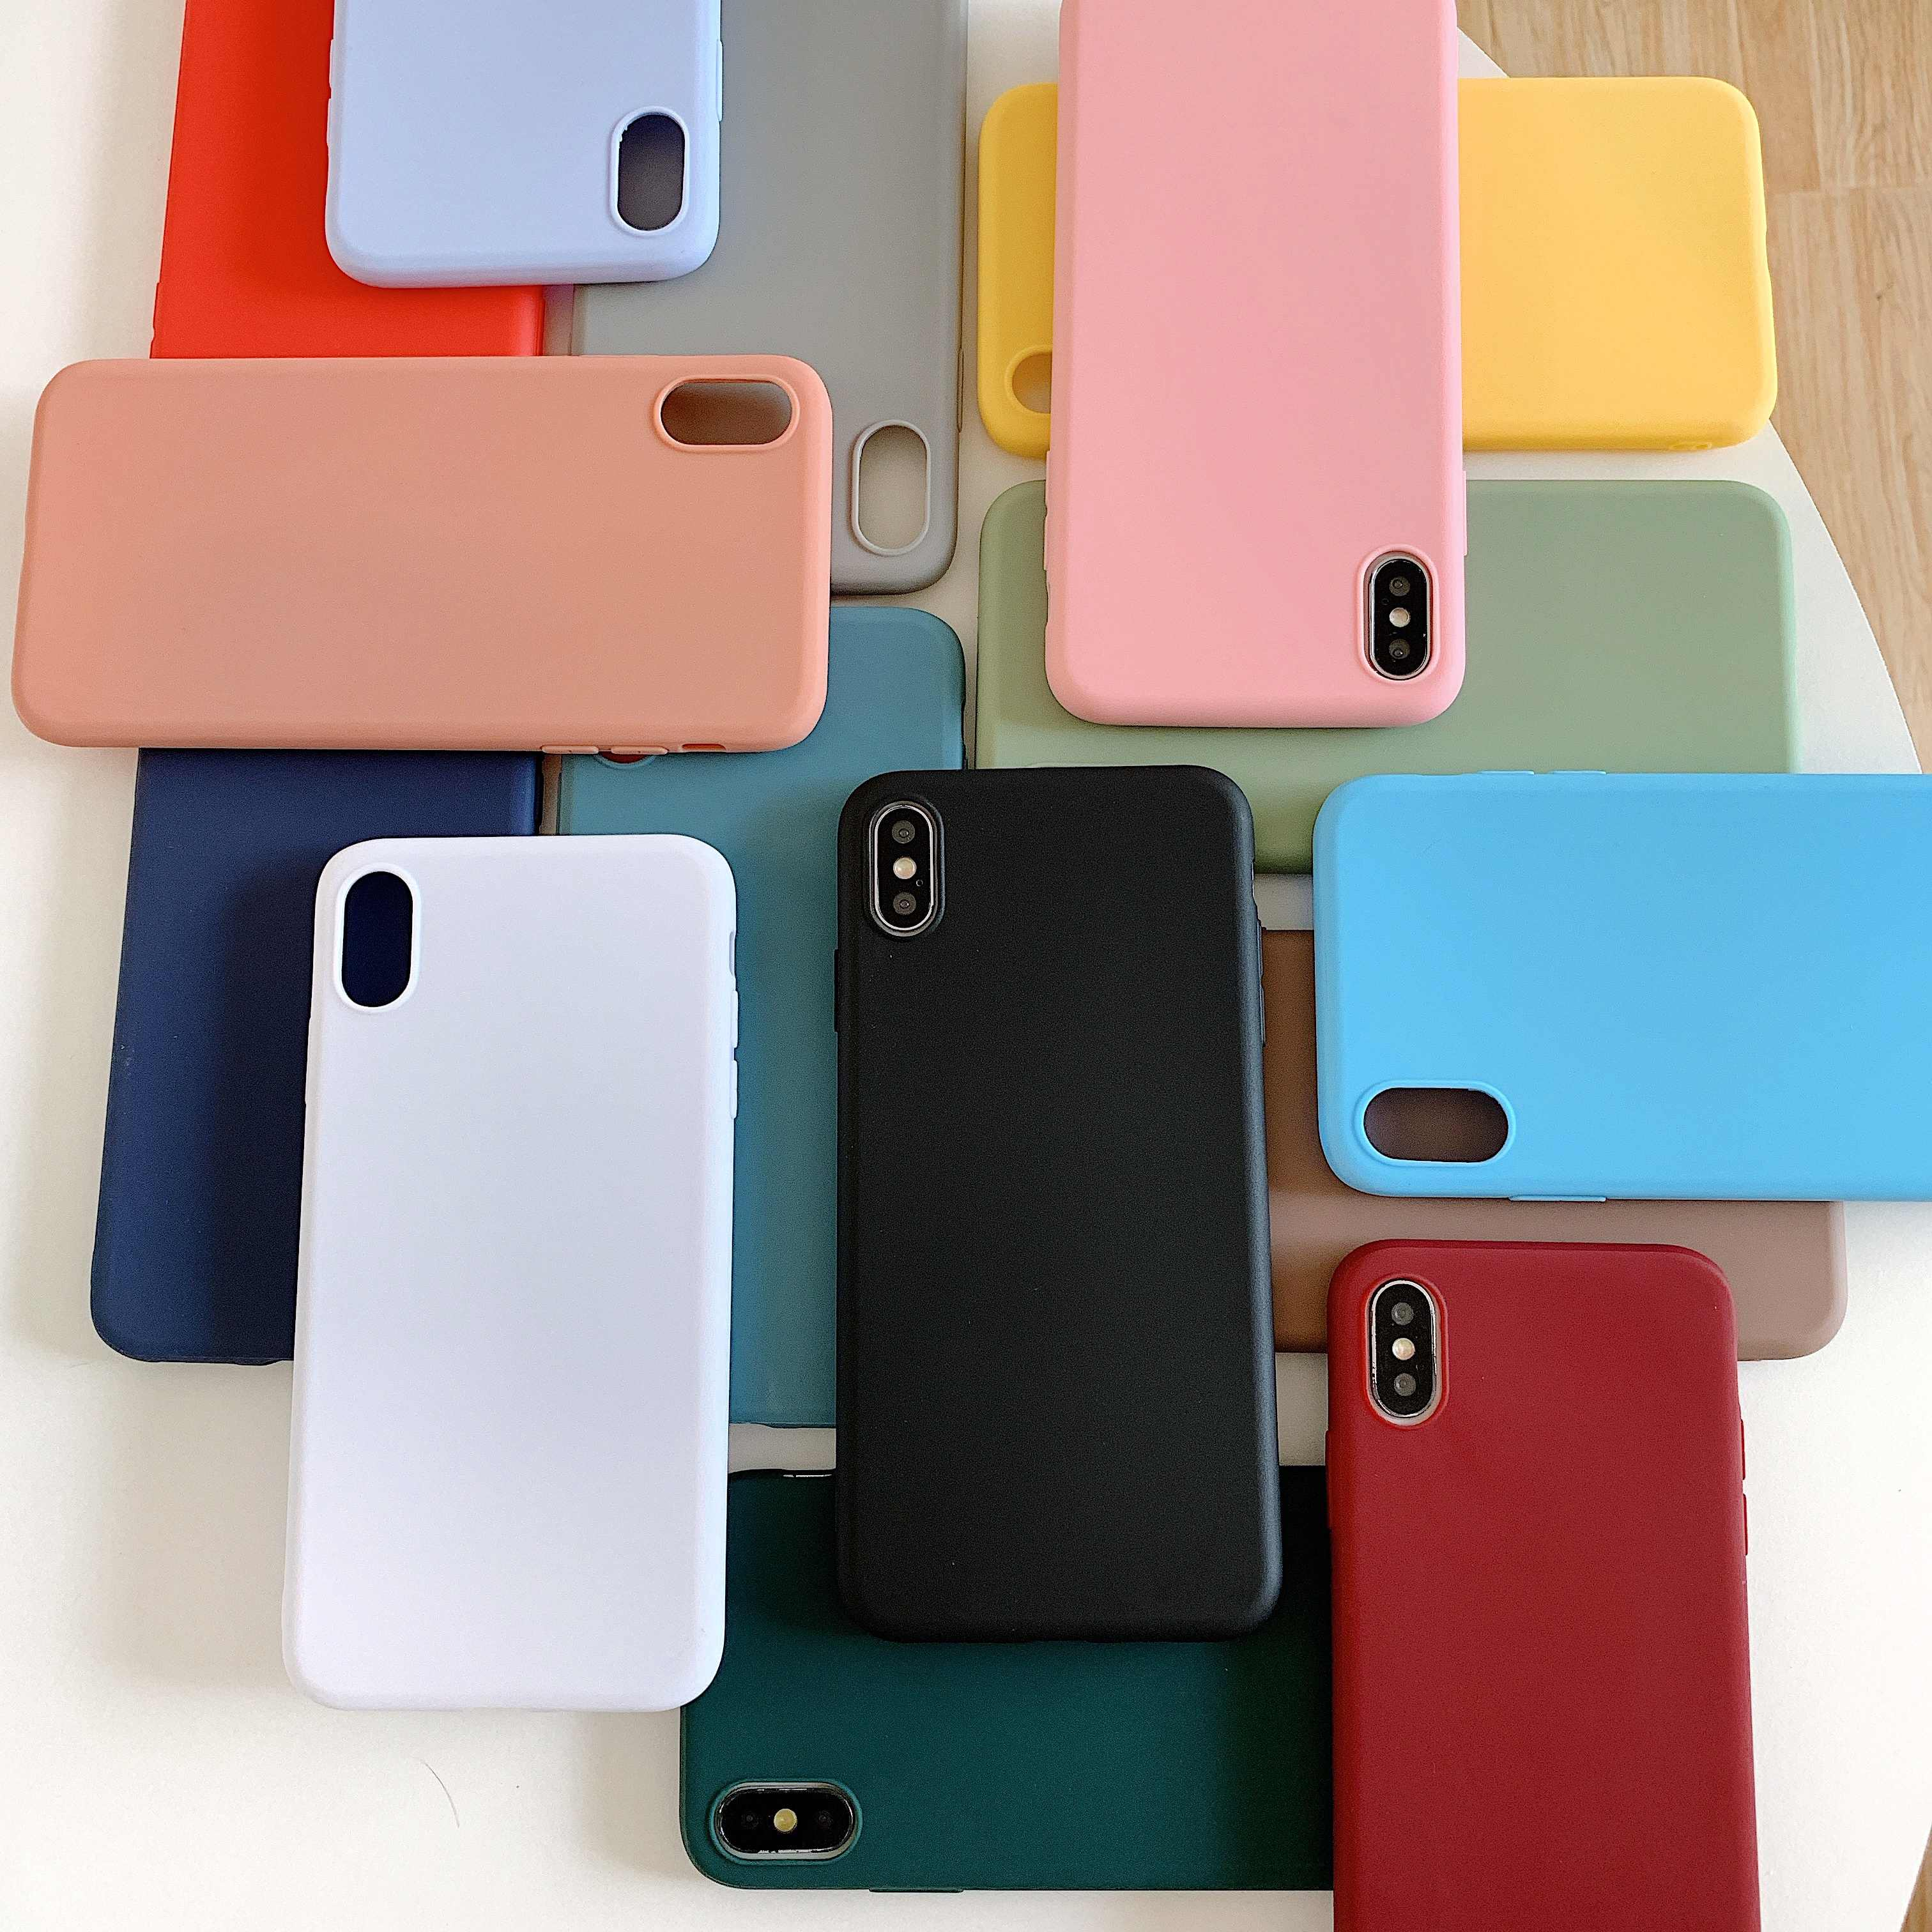 Luxe Candy Soft Silicone Cover Voor Iphone 6 6S 7 8 Plus X Xs Xr Max S 11 Pro Max 11Pro voor Samsung S10 S9 S8 Plus + Telefoon Geval